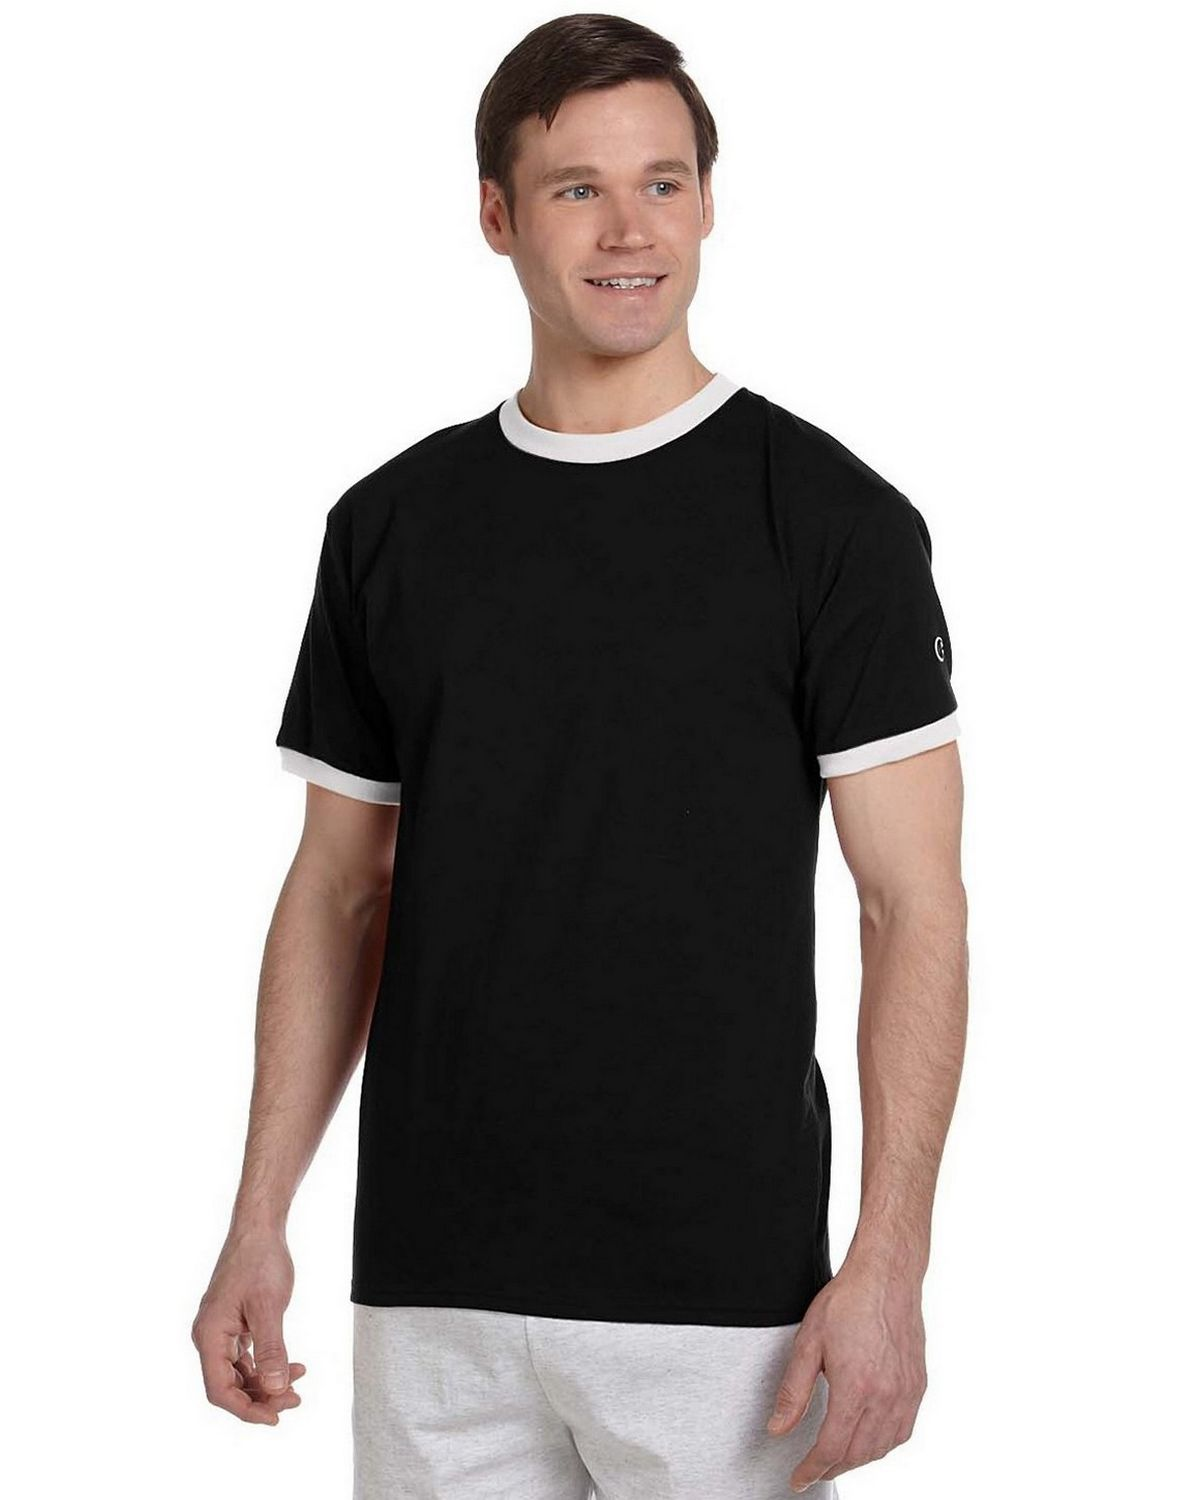 dda85bd4 Champion T1396 5.6 oz. Cotton Tagless Ringer T-Shirt ...